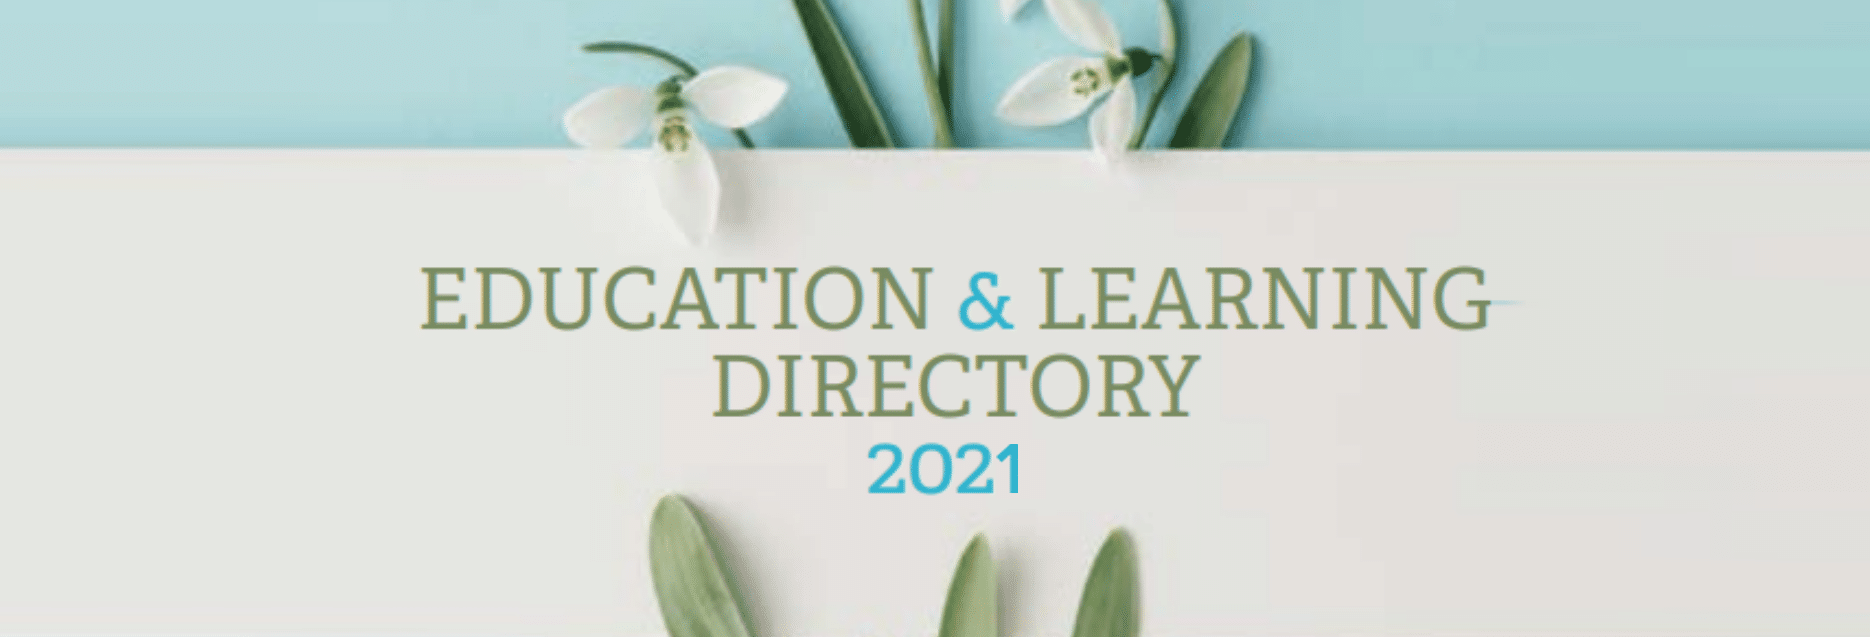 Download our Course Directory